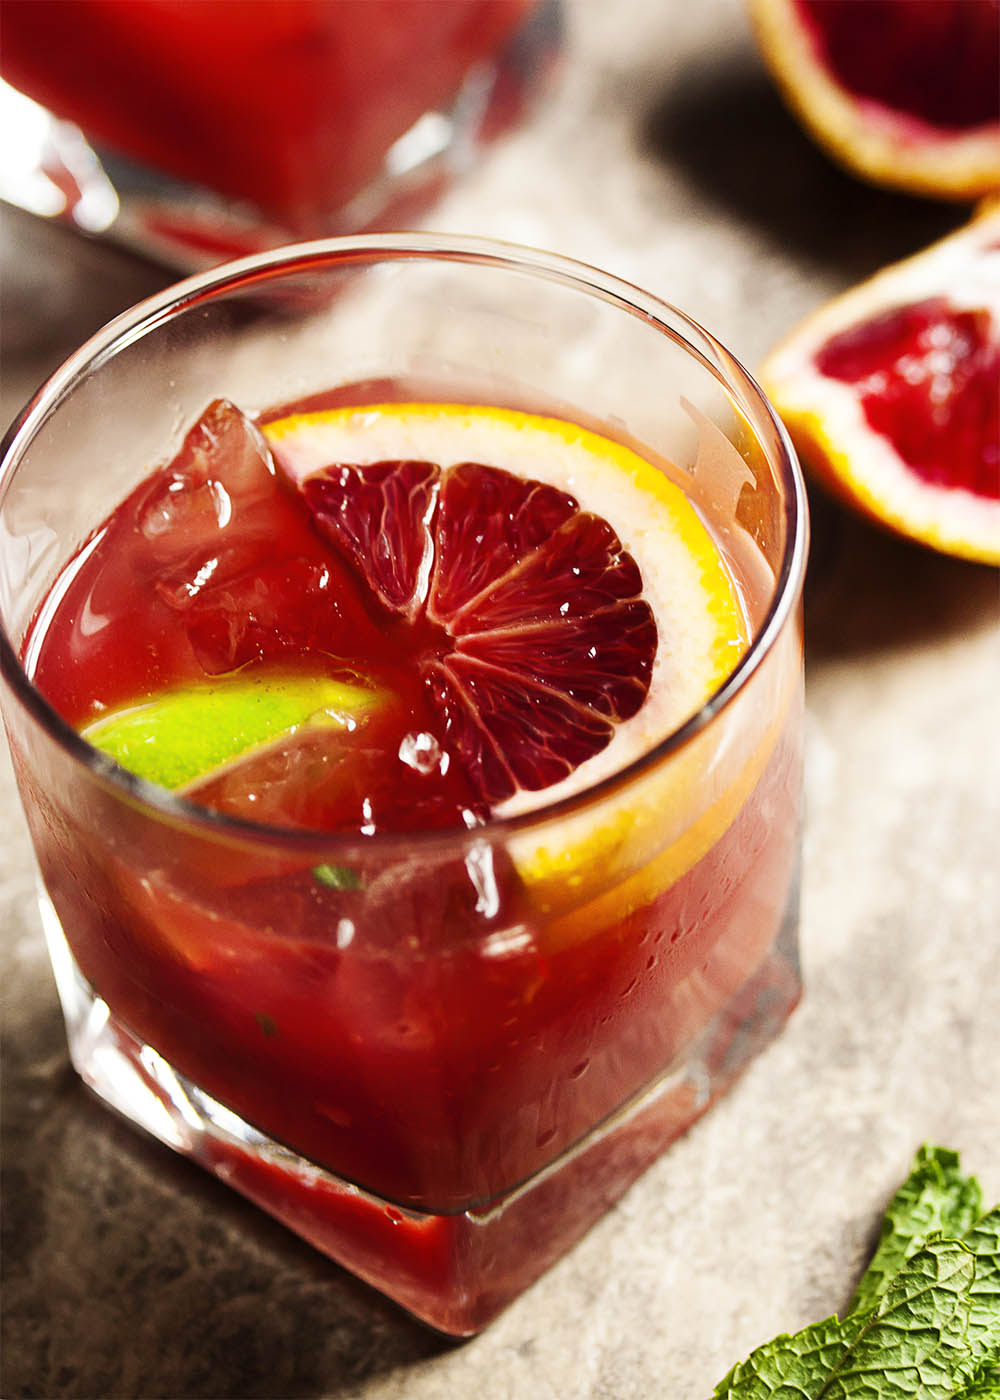 Blood Orange Bourbon Smash - Blood oranges give this Bourbon Smash a gorgeous ruby color. Maple syrup provides a bit of smokey, sweetness while lime and mint give the drink an extra pop of flavor. Have it as is for smooth sipping or add a splash of soda water for a lively cooler.   justalittlebitofbacon.com